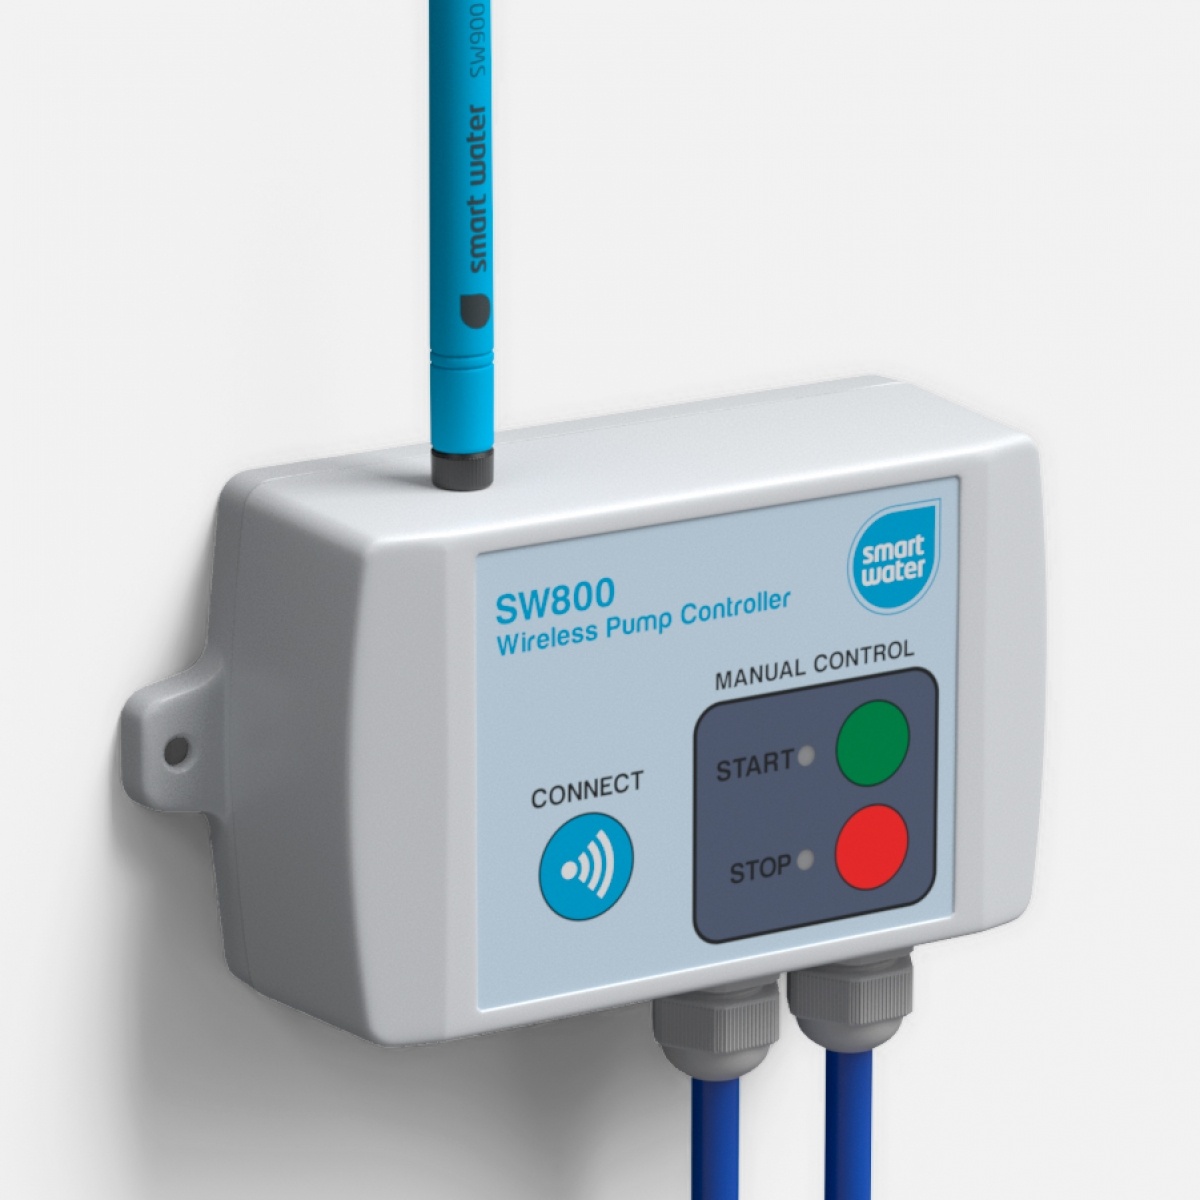 SW800 Wireless Pump Controller (12VDC) 1